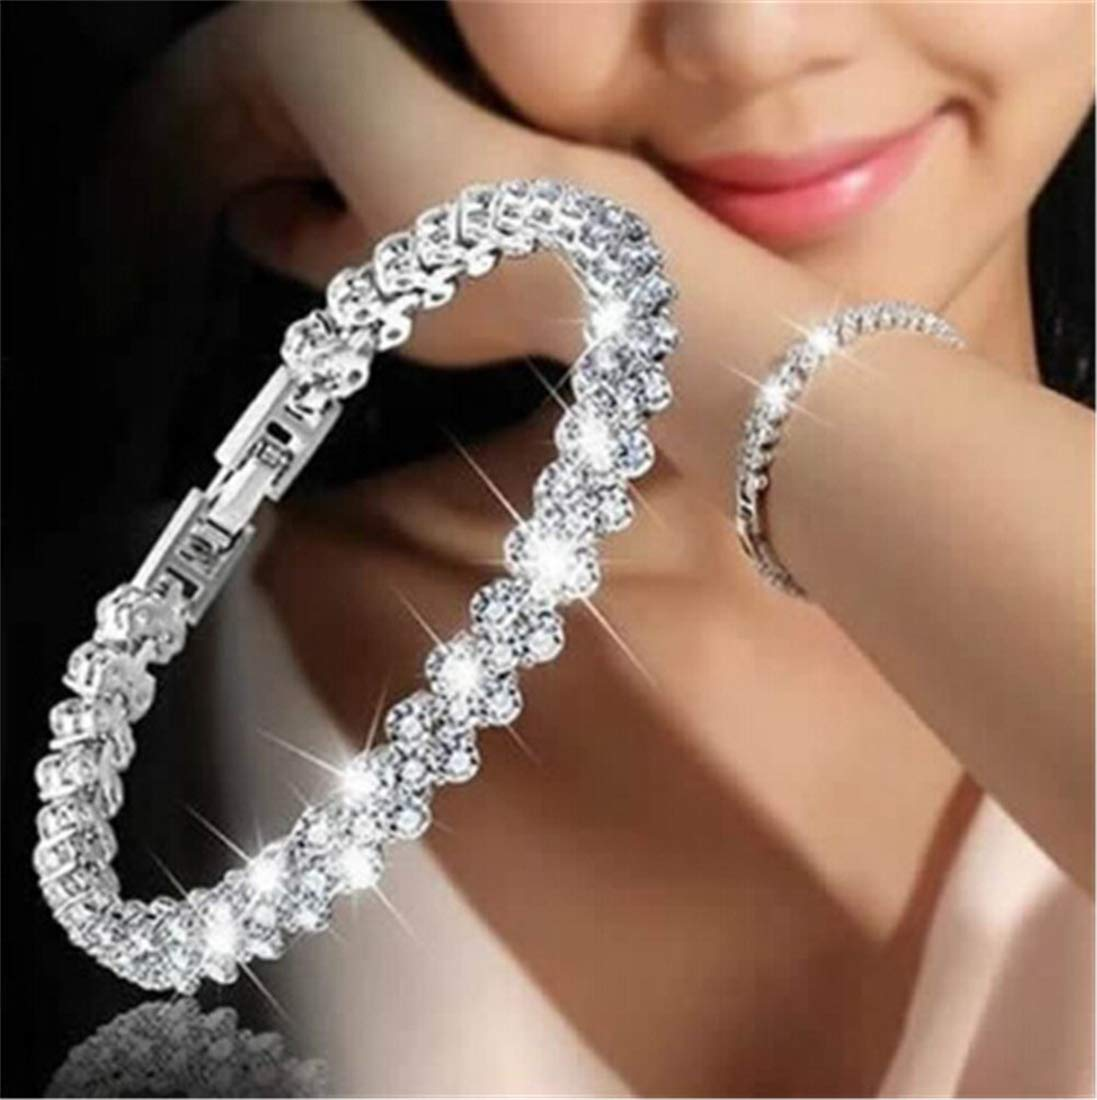 Tmrow Ladies Cubic Zirconia Crystal Tennis Tennis Bracelets Clear White Gold Plated for Women Girls